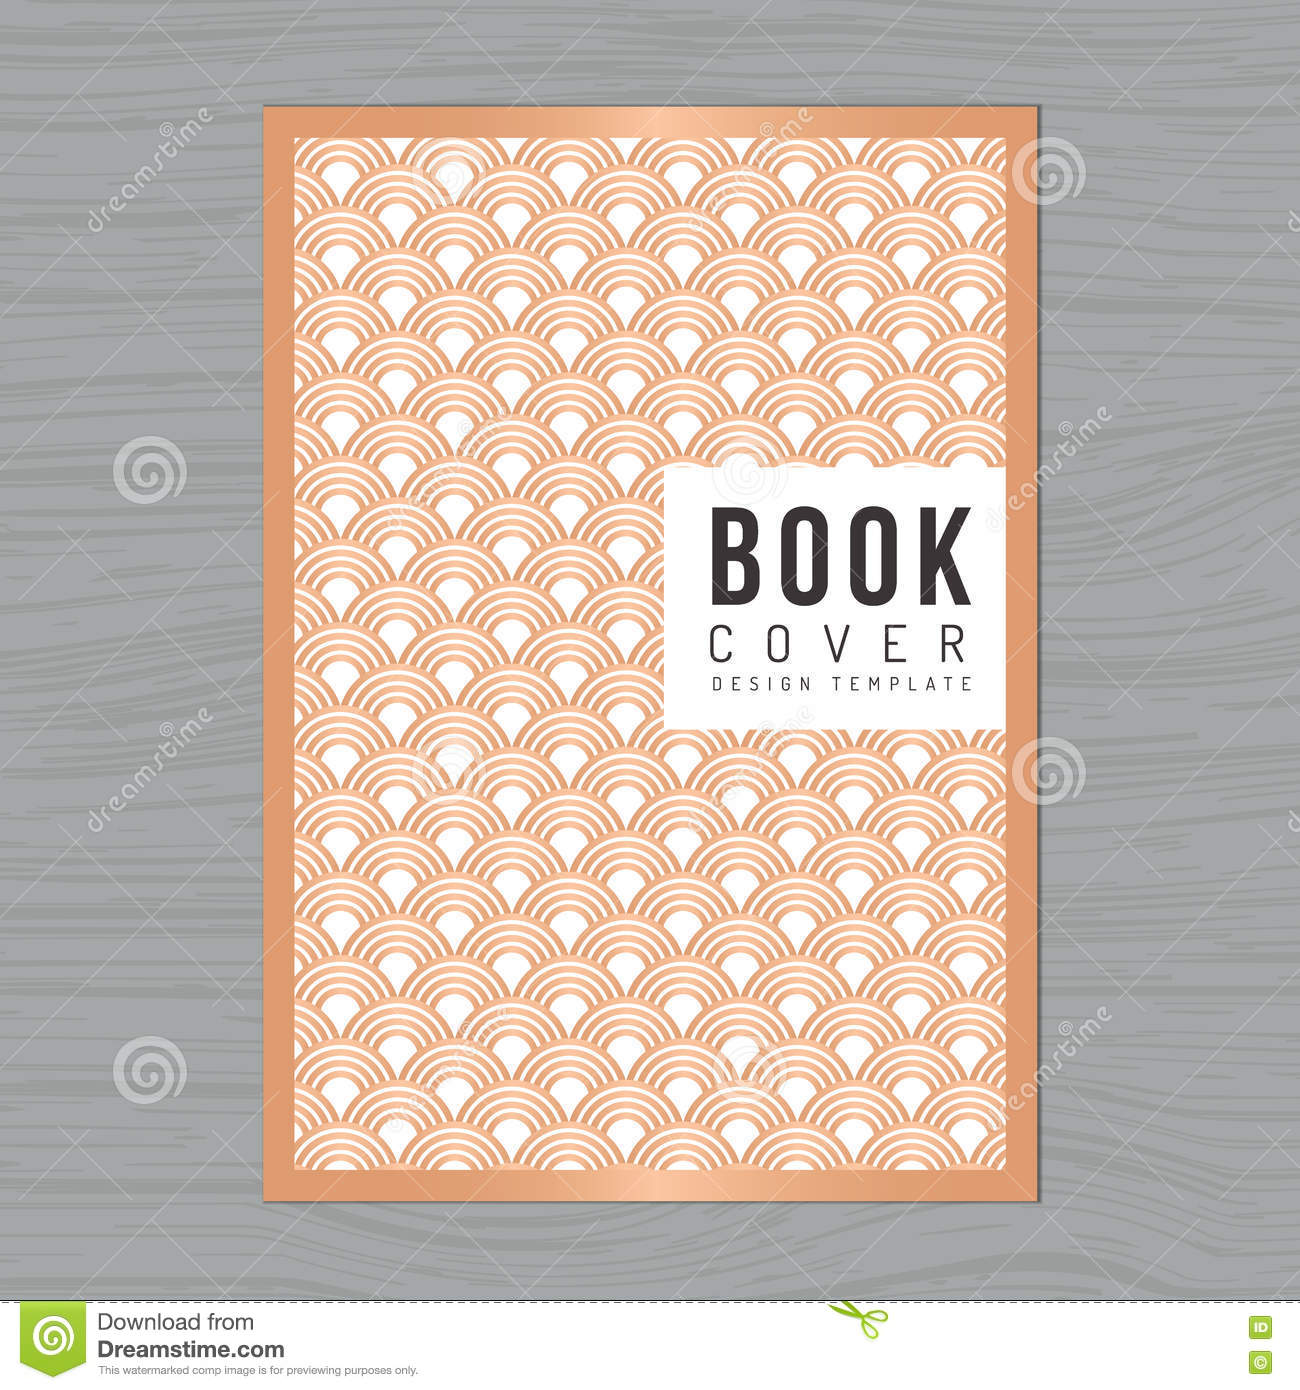 Abstract Book Cover Background ~ Style template abstract background book cover cartoon